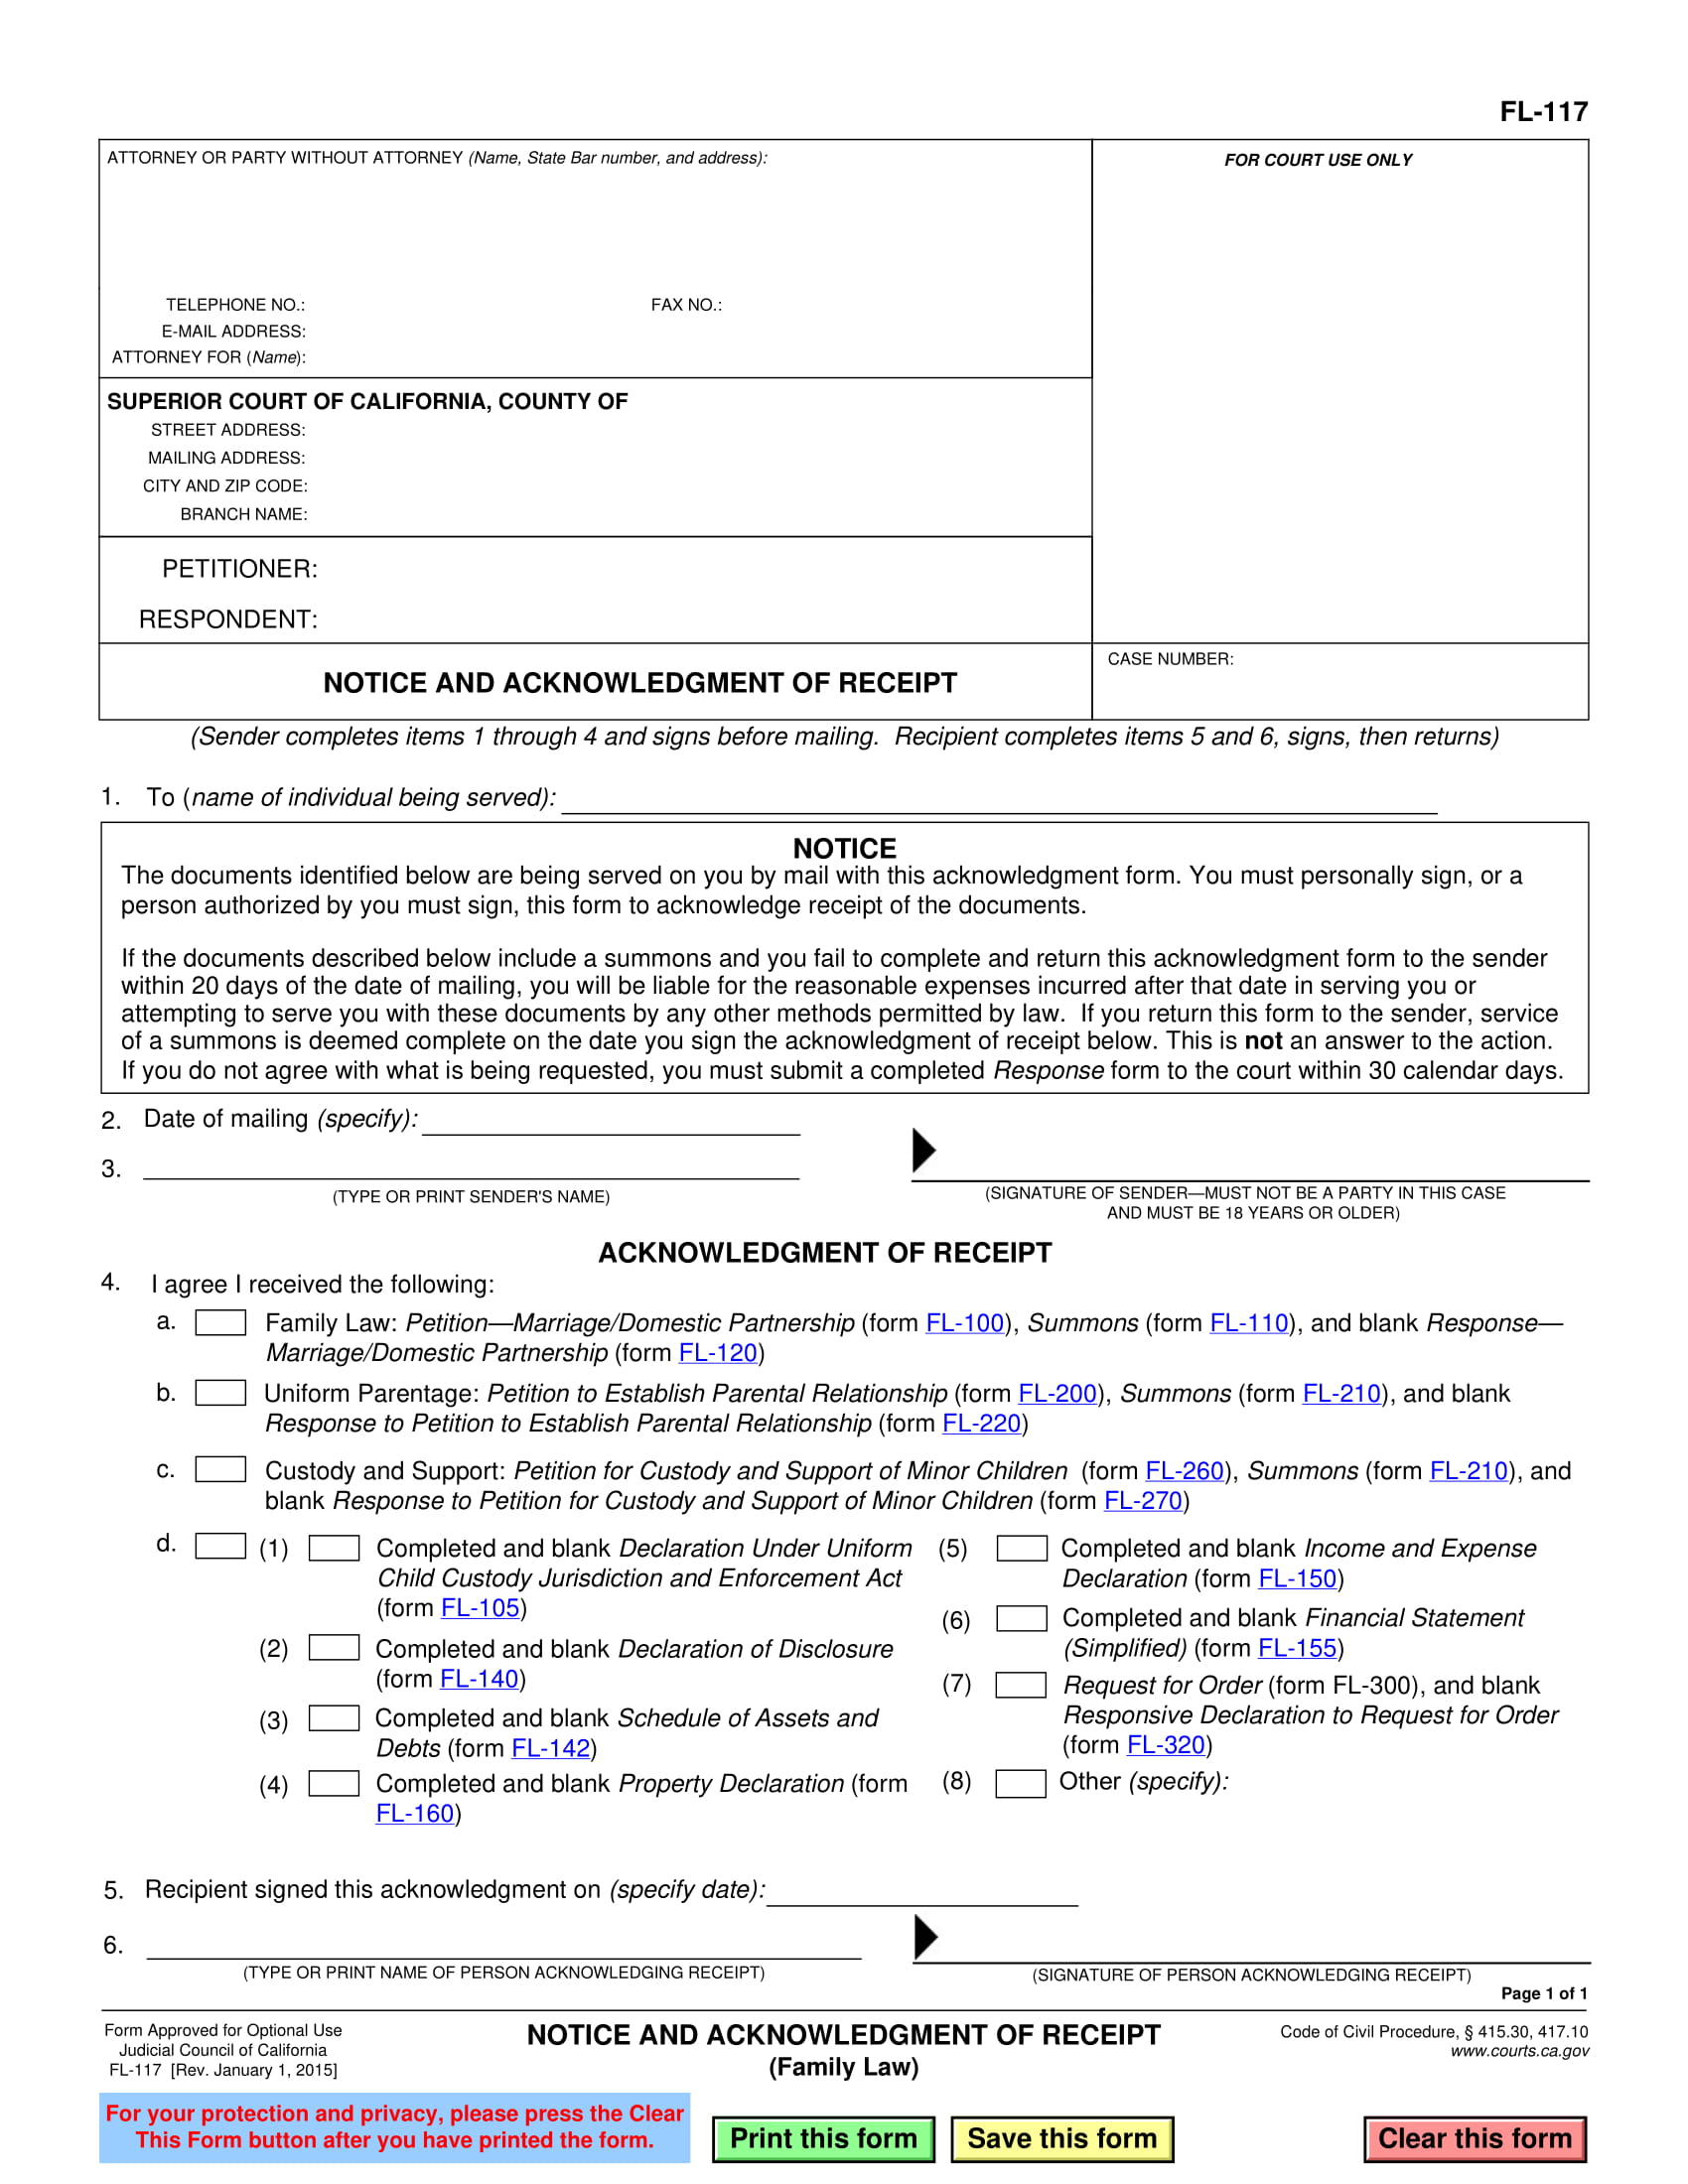 notice and acknowledgement receipt example